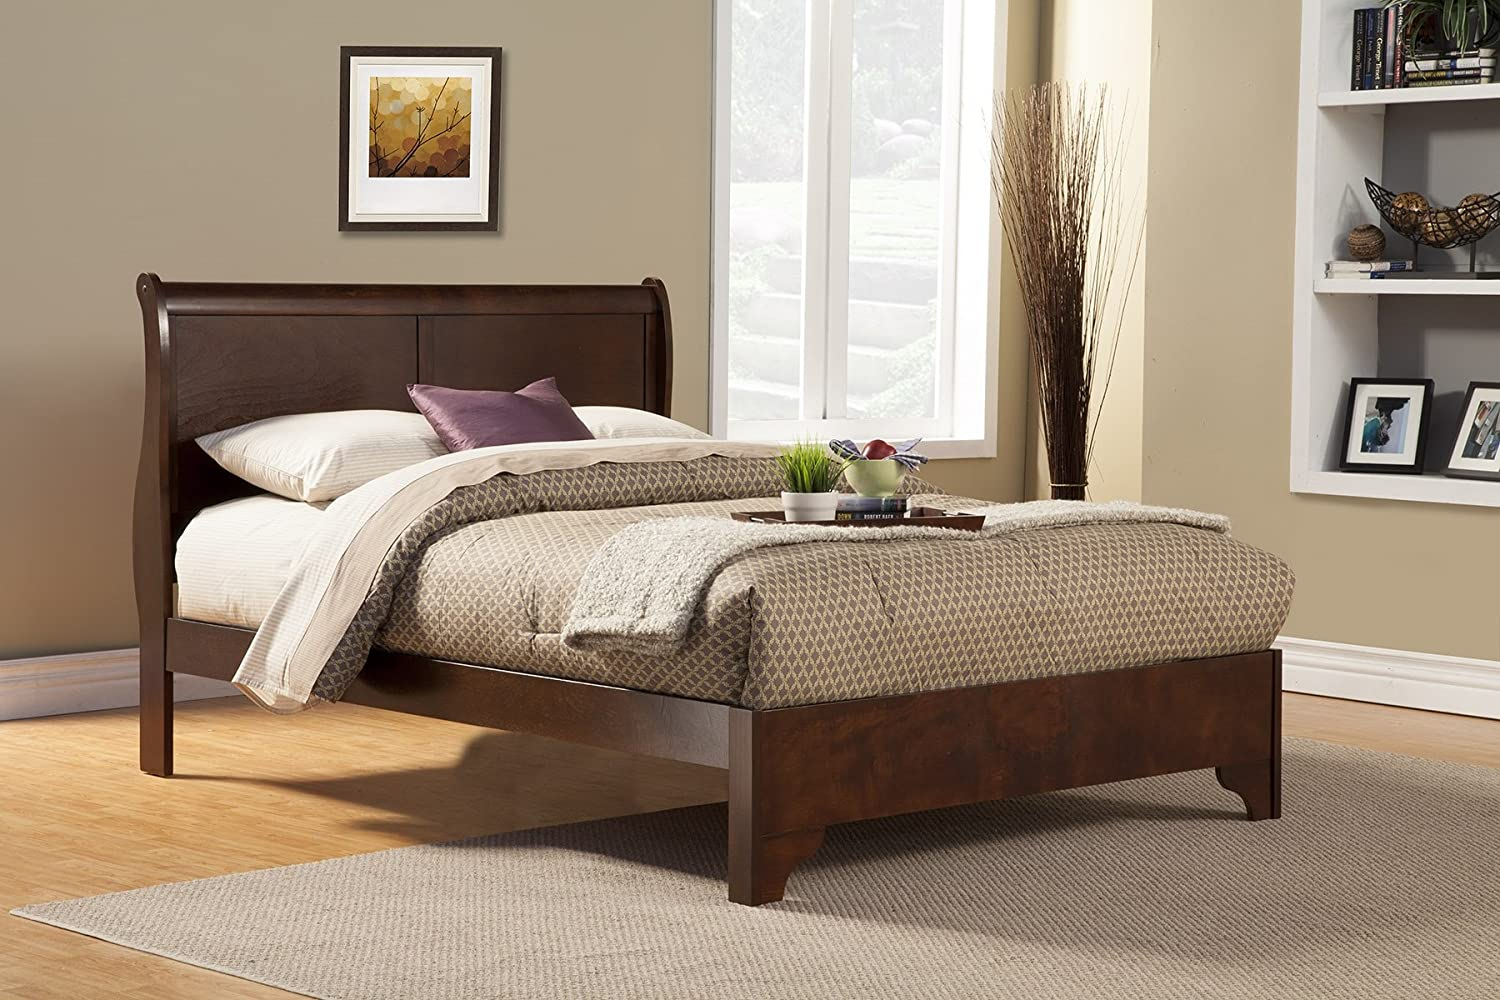 amazoncom alpine furniture 2200q west haven bed queen home u0026 kitchen